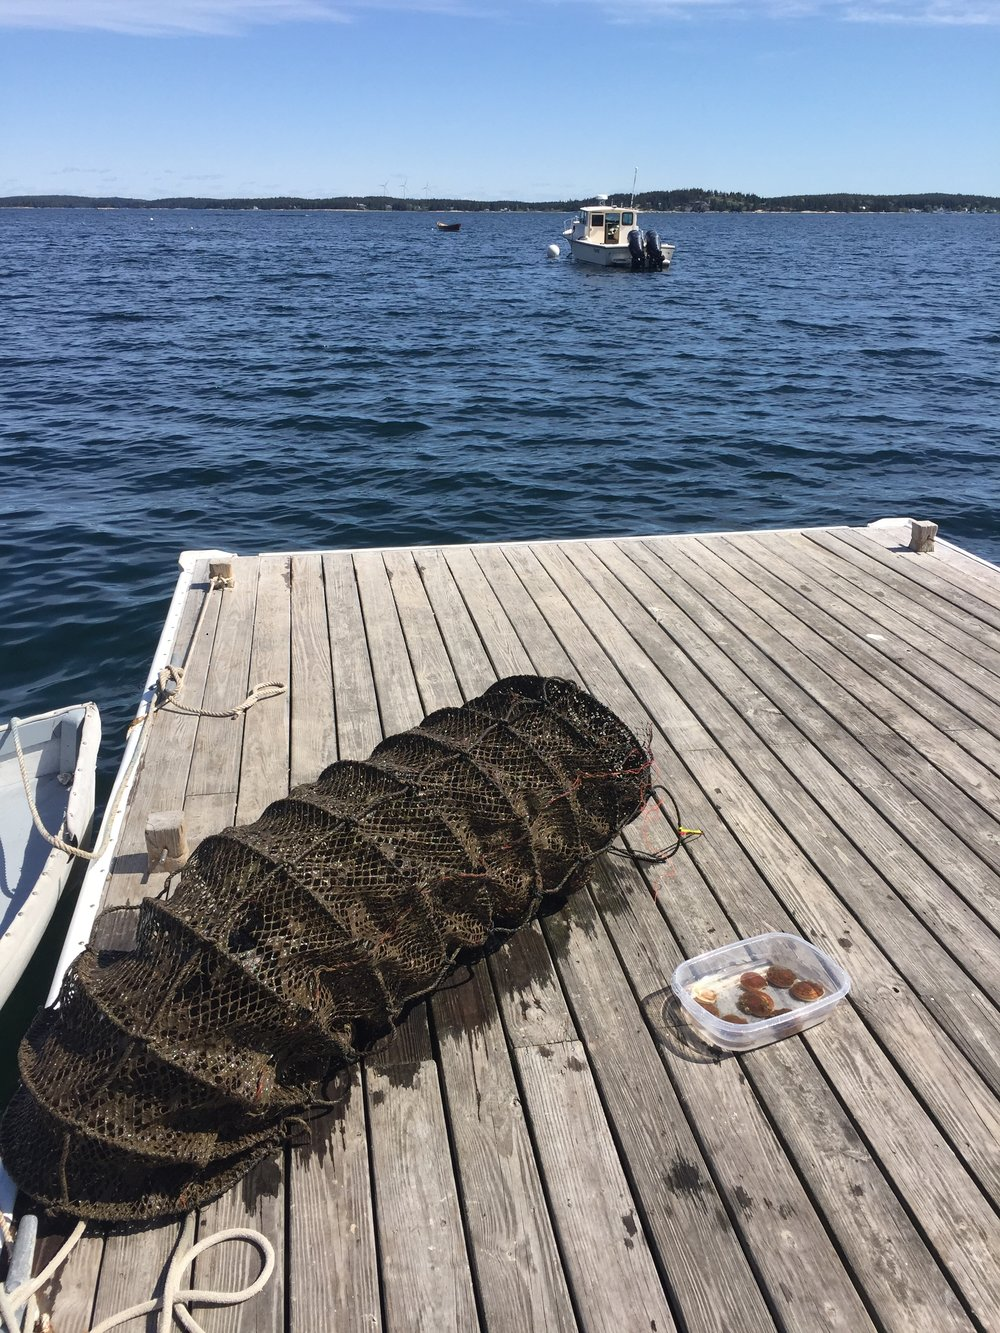 A lantern net loaded of scallops enjoys a beautiful day on the docks.